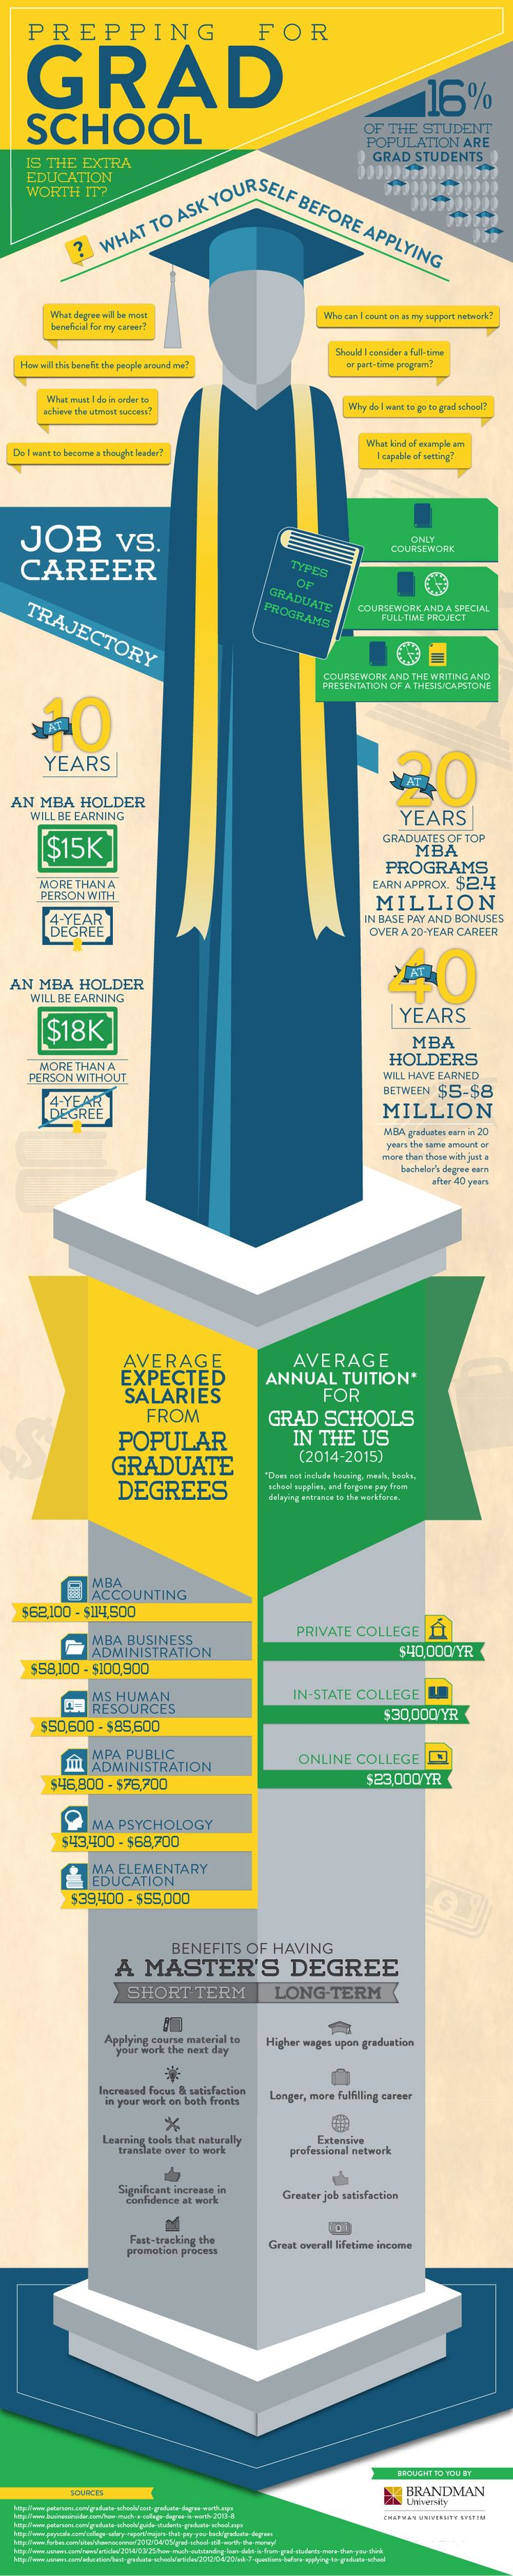 best ideas about graduate program preschool the roi of a master s degree infographic education